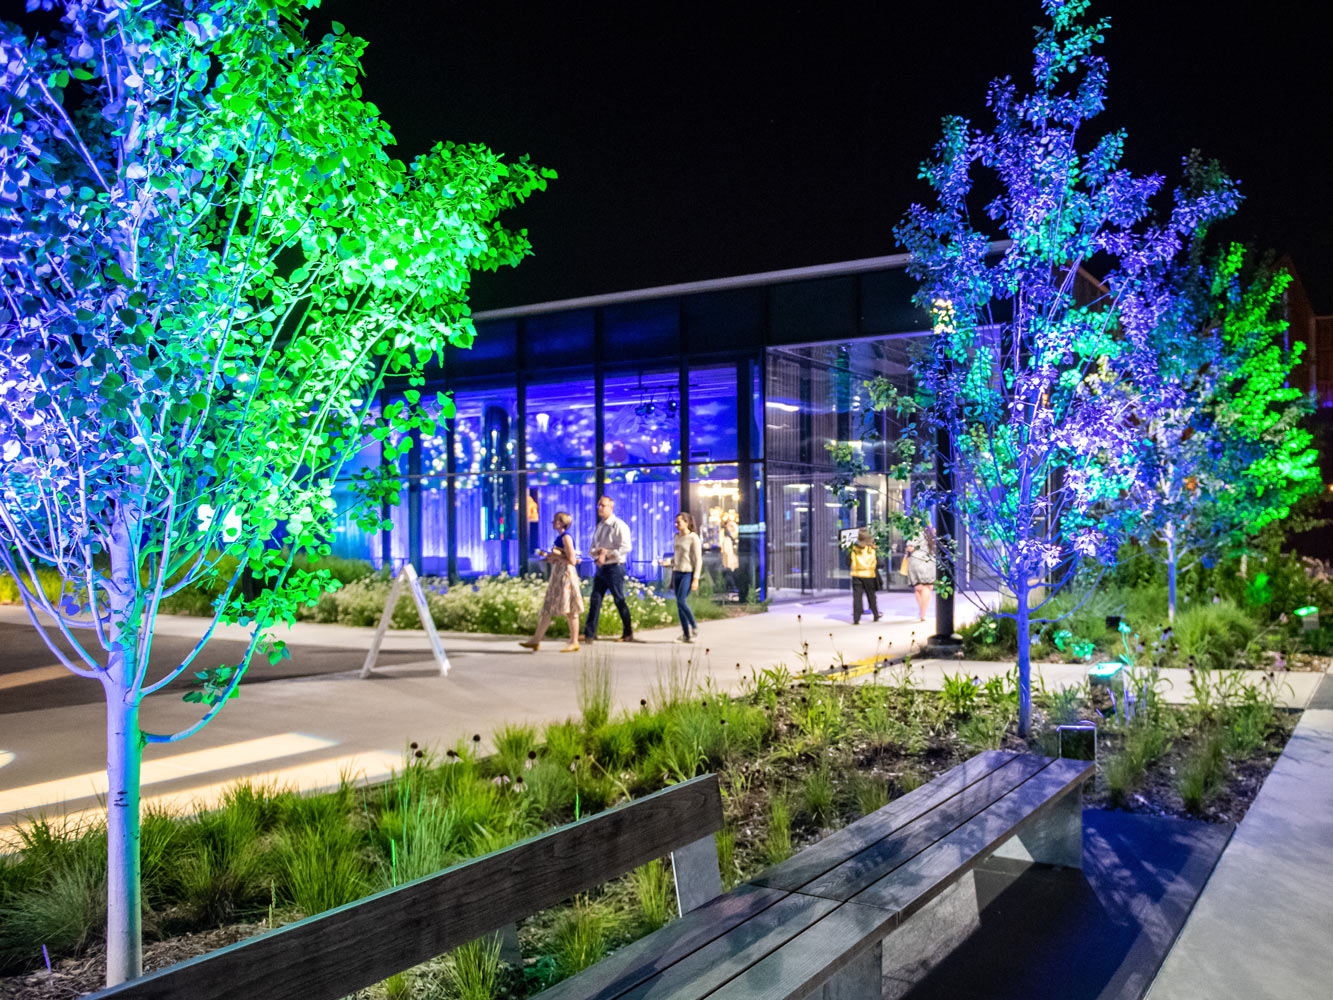 The entrance of the Bell Museum at night during a special event, with bright blue and green lights illuminating the trees